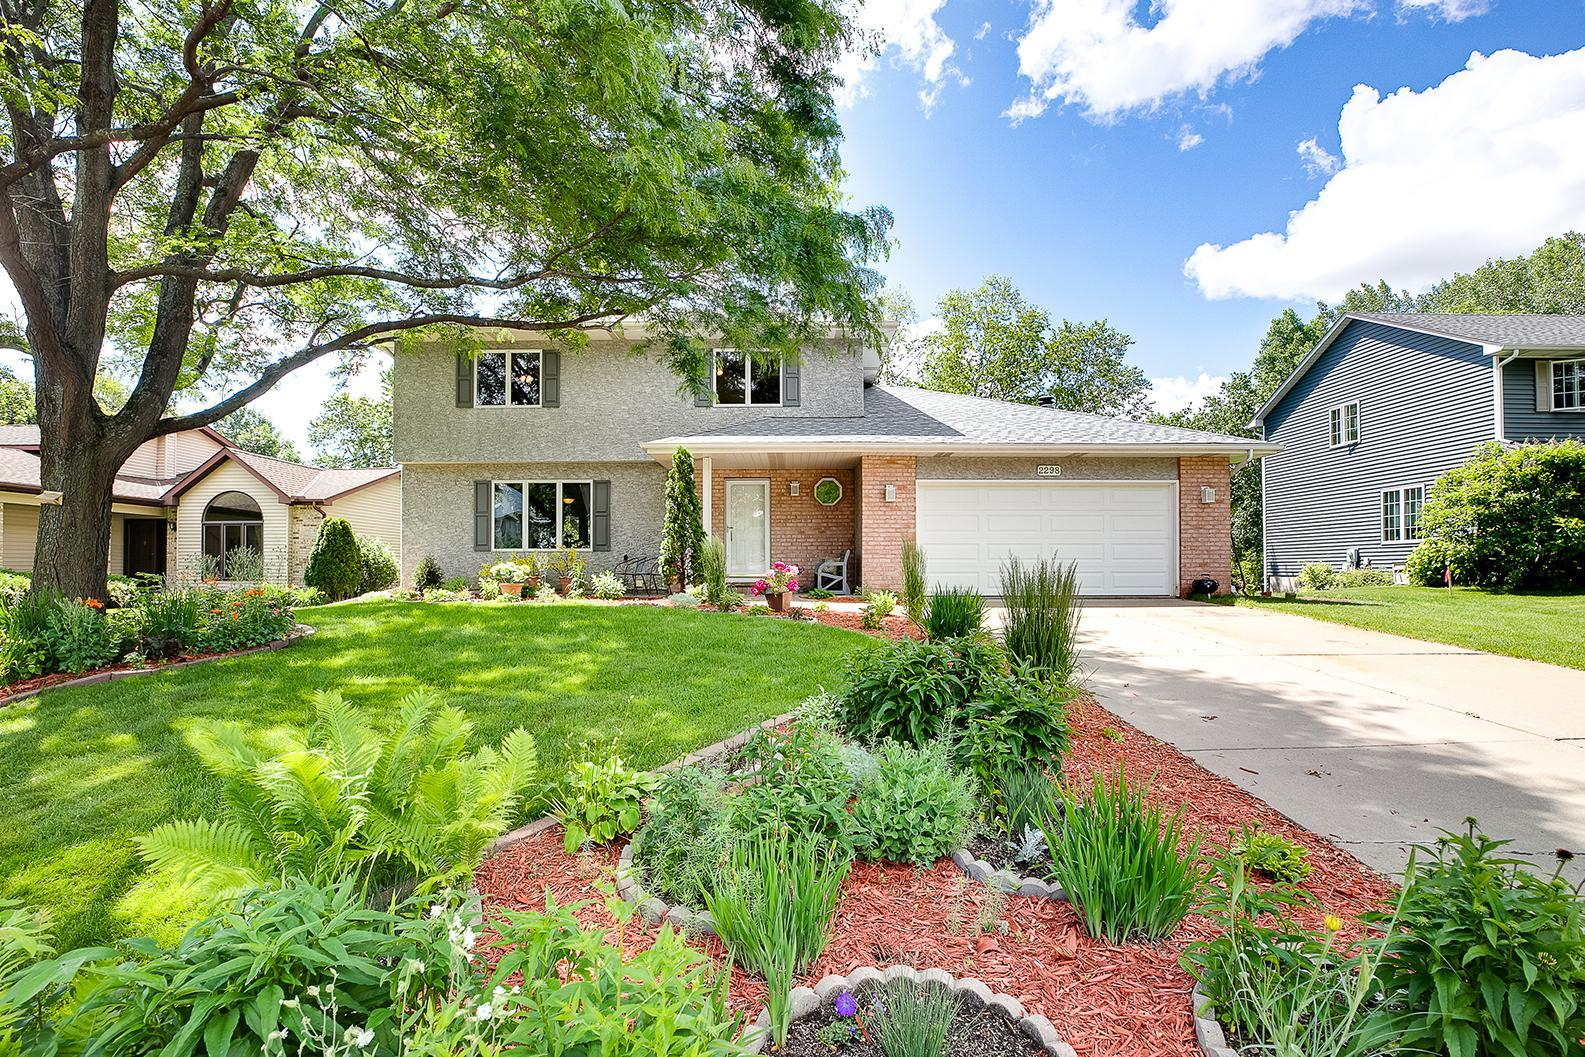 2298 Nebraska E Property Photo - Maplewood, MN real estate listing